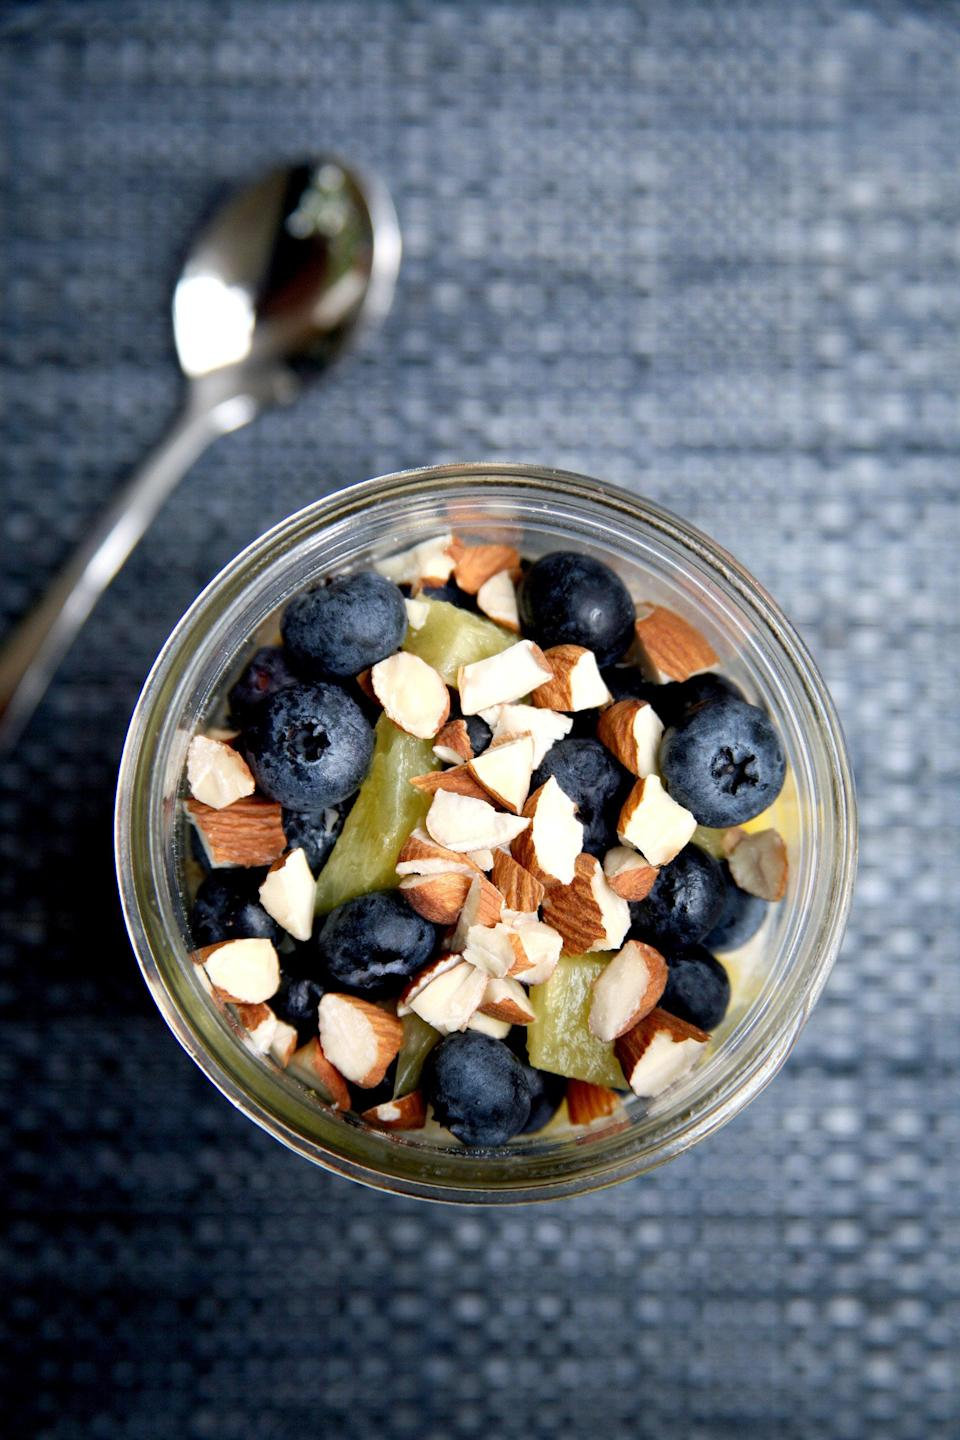 "<span>  </span> <p><b>Get the recipe:</b> <a href=""https://www.popsugar.com/fitness/Flat-Belly-Overnight-Oats-38687684"" class=""link rapid-noclick-resp"" rel=""nofollow noopener"" target=""_blank"" data-ylk=""slk:Blueberry-Pineapple Overnight Oats"">Blueberry-Pineapple Overnight Oats</a></p>"